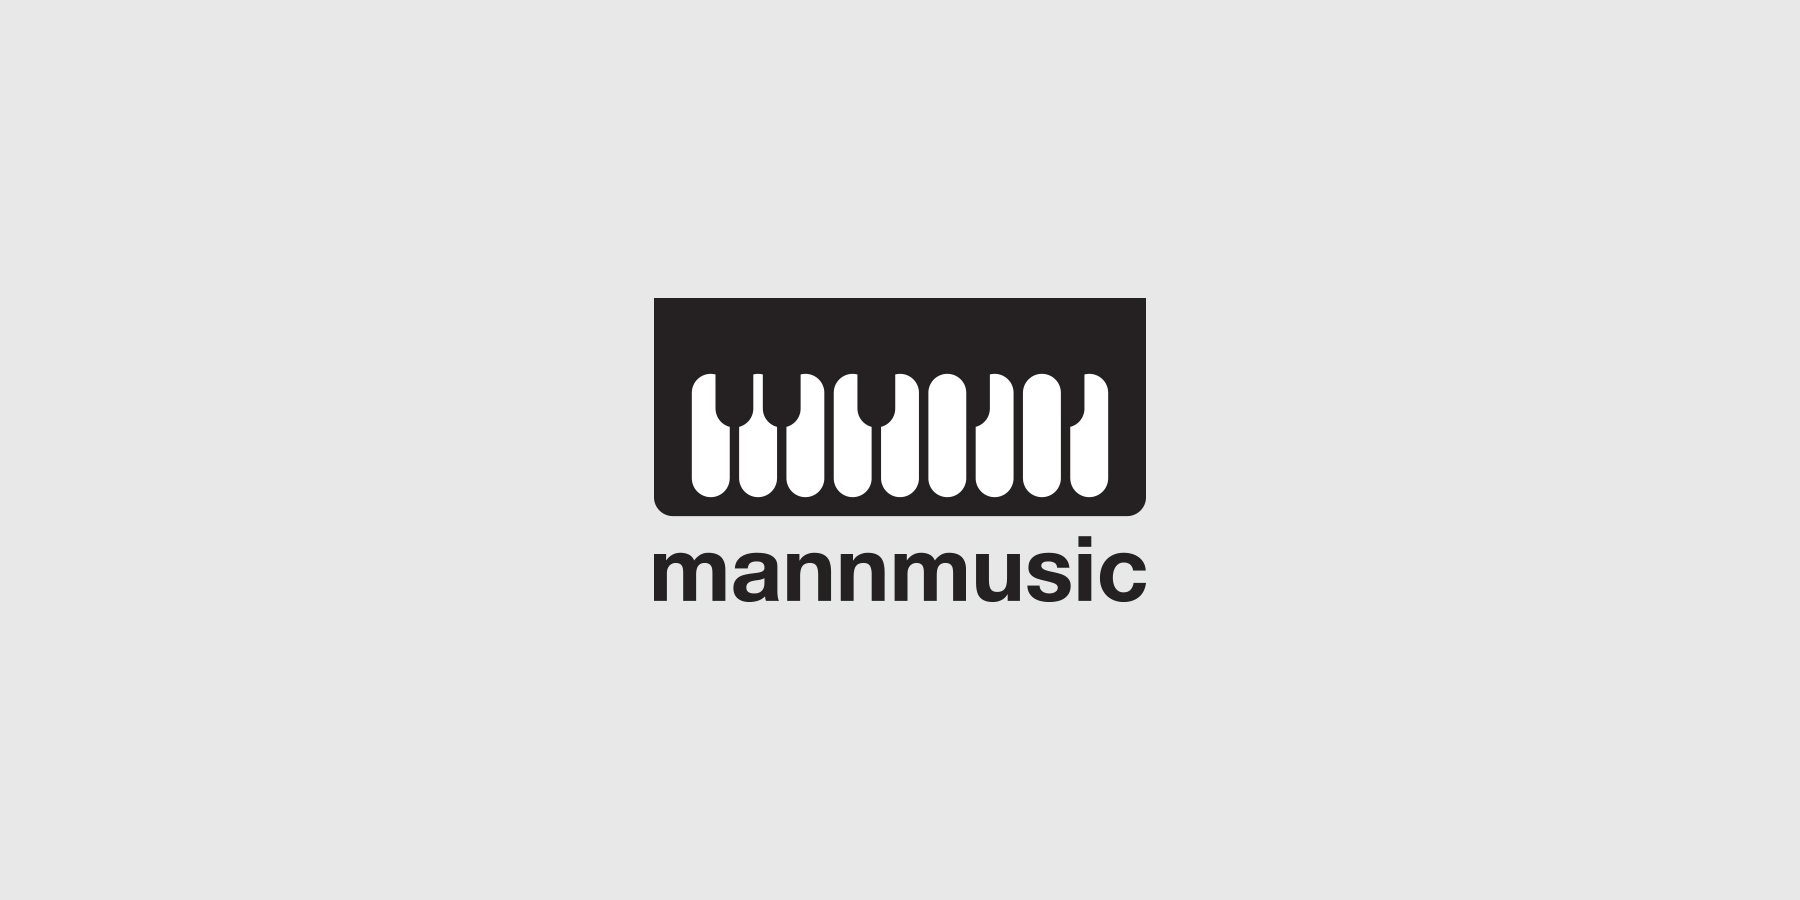 mann-music-logo-design-01